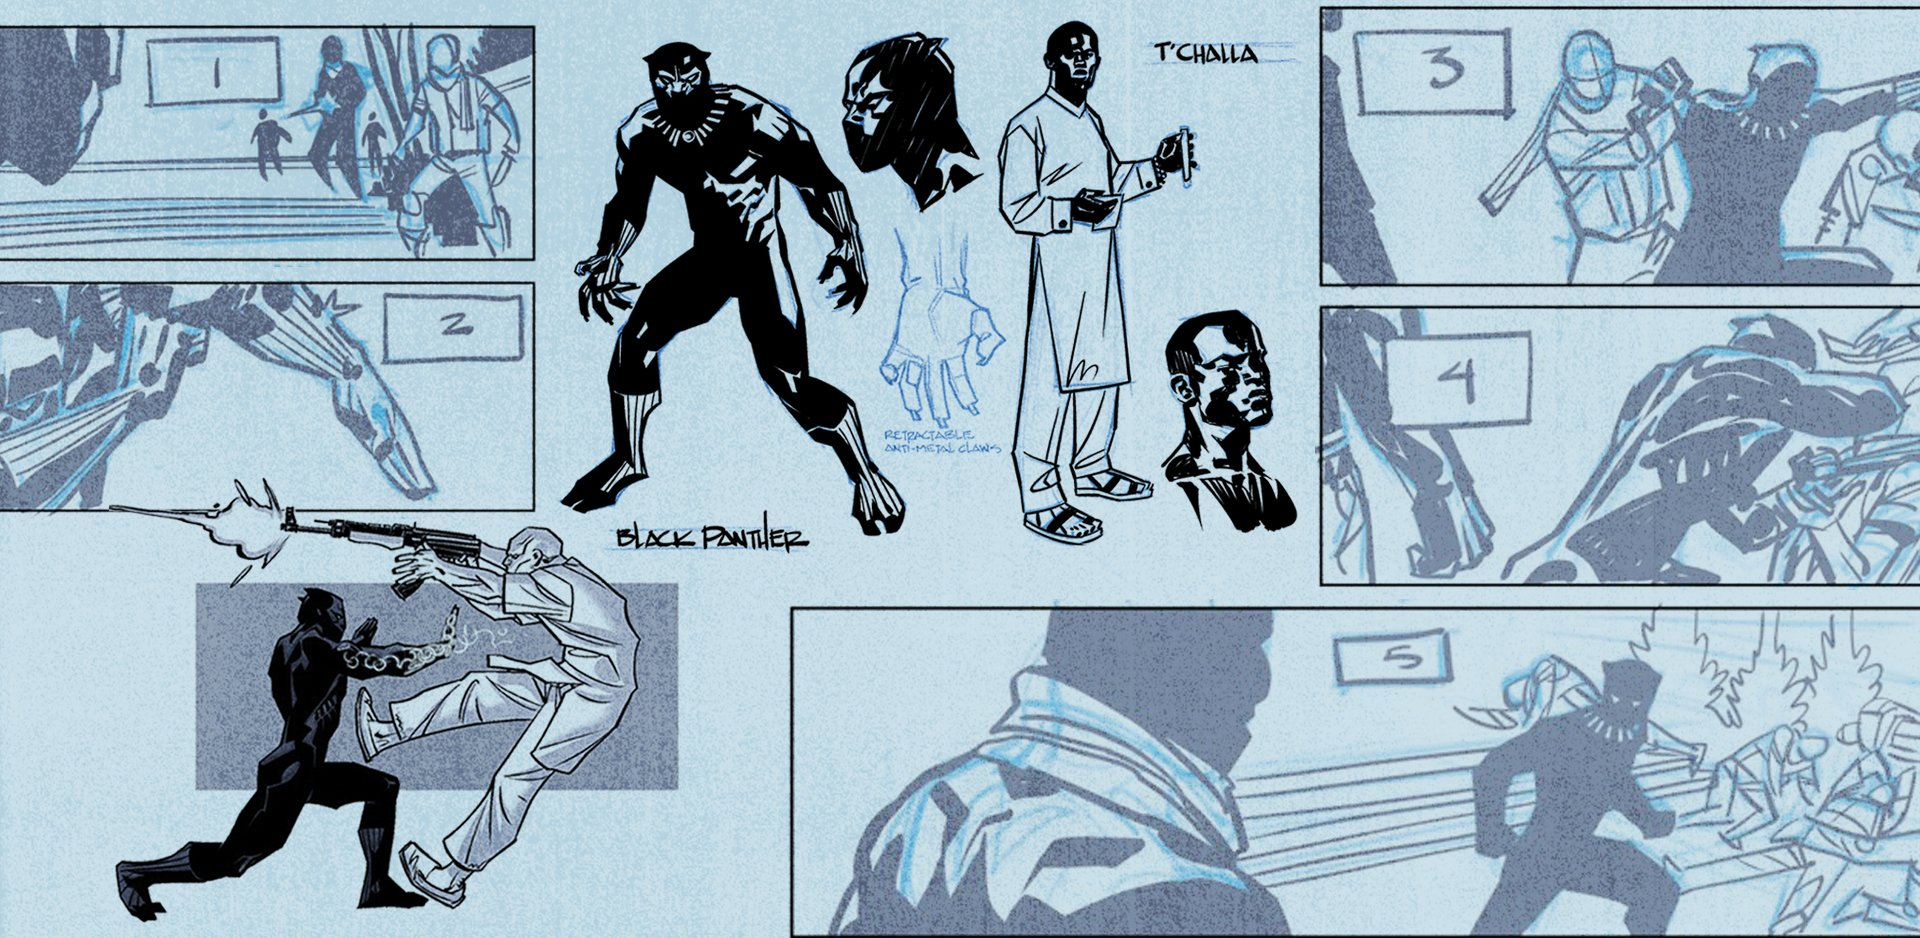 An Exclusive Look at  Black Panther  1  by Ta-Nehisi Coates - The ... 541f04ac81c6